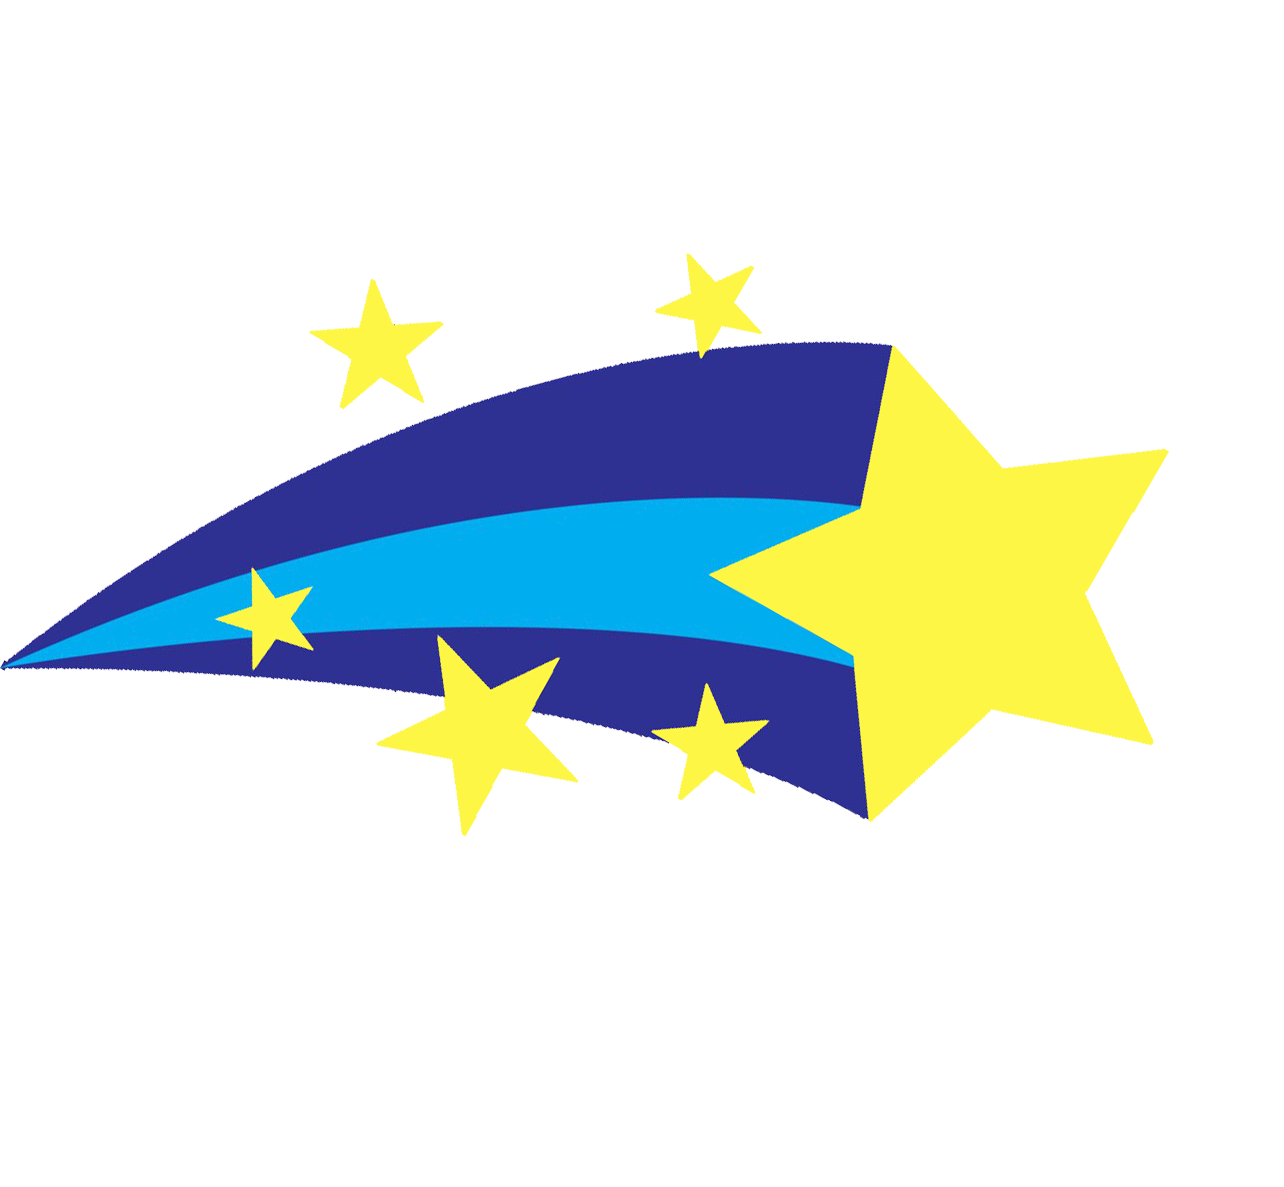 Star clipart 3d png 28+ Collection of Blue Shooting Stars Clipart | High quality, free ... png